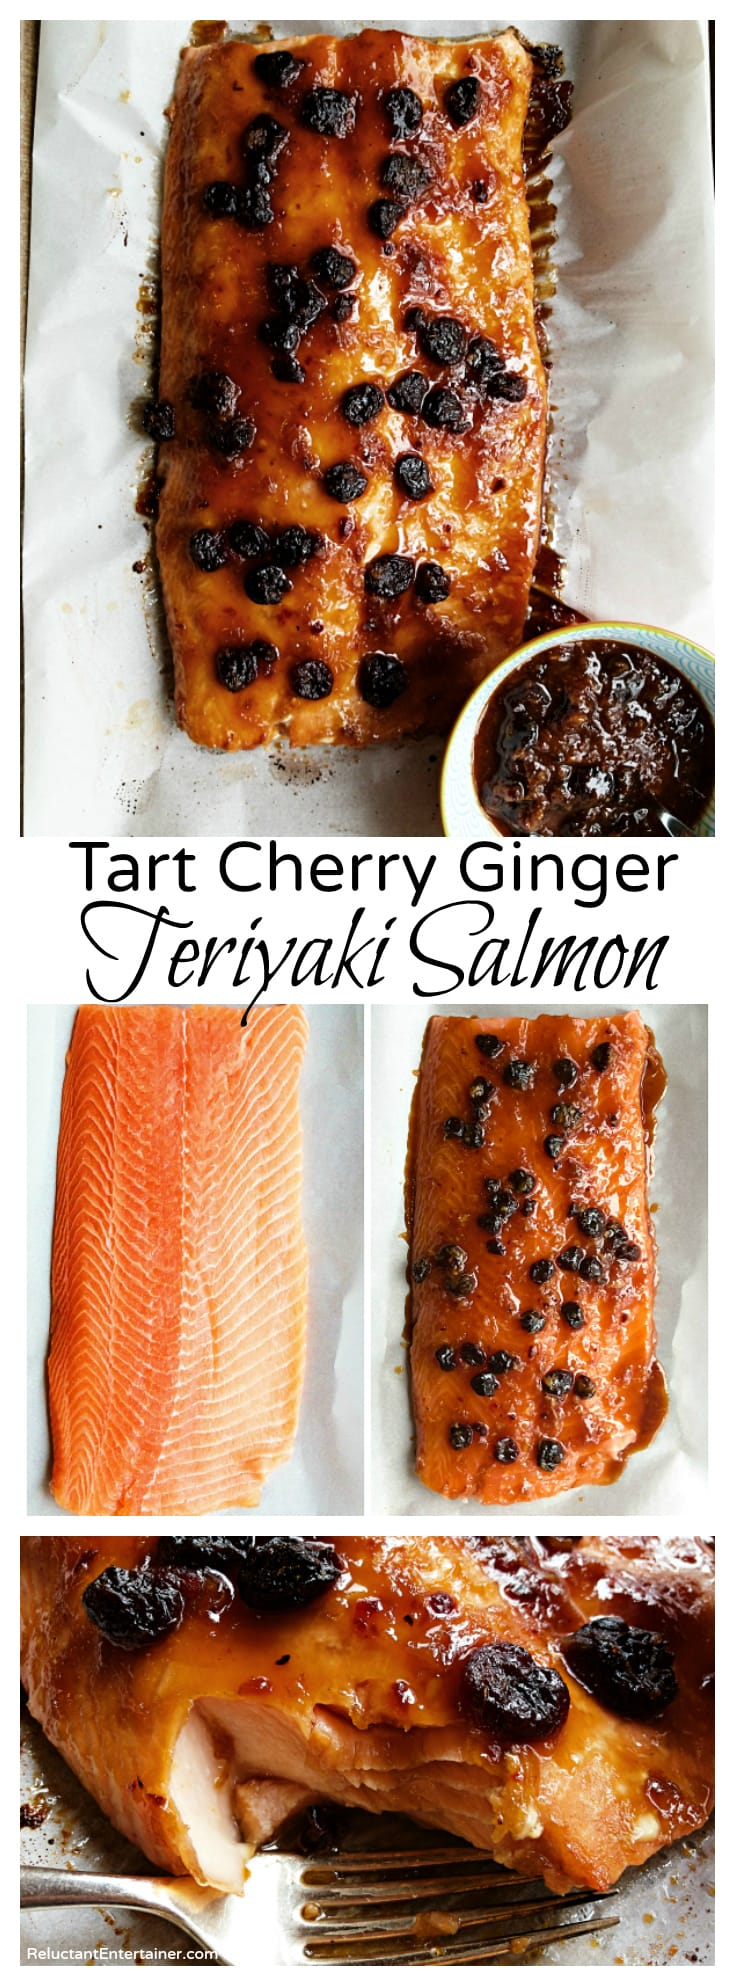 Tart Cherry Ginger Teriyaki Salmon Recipe